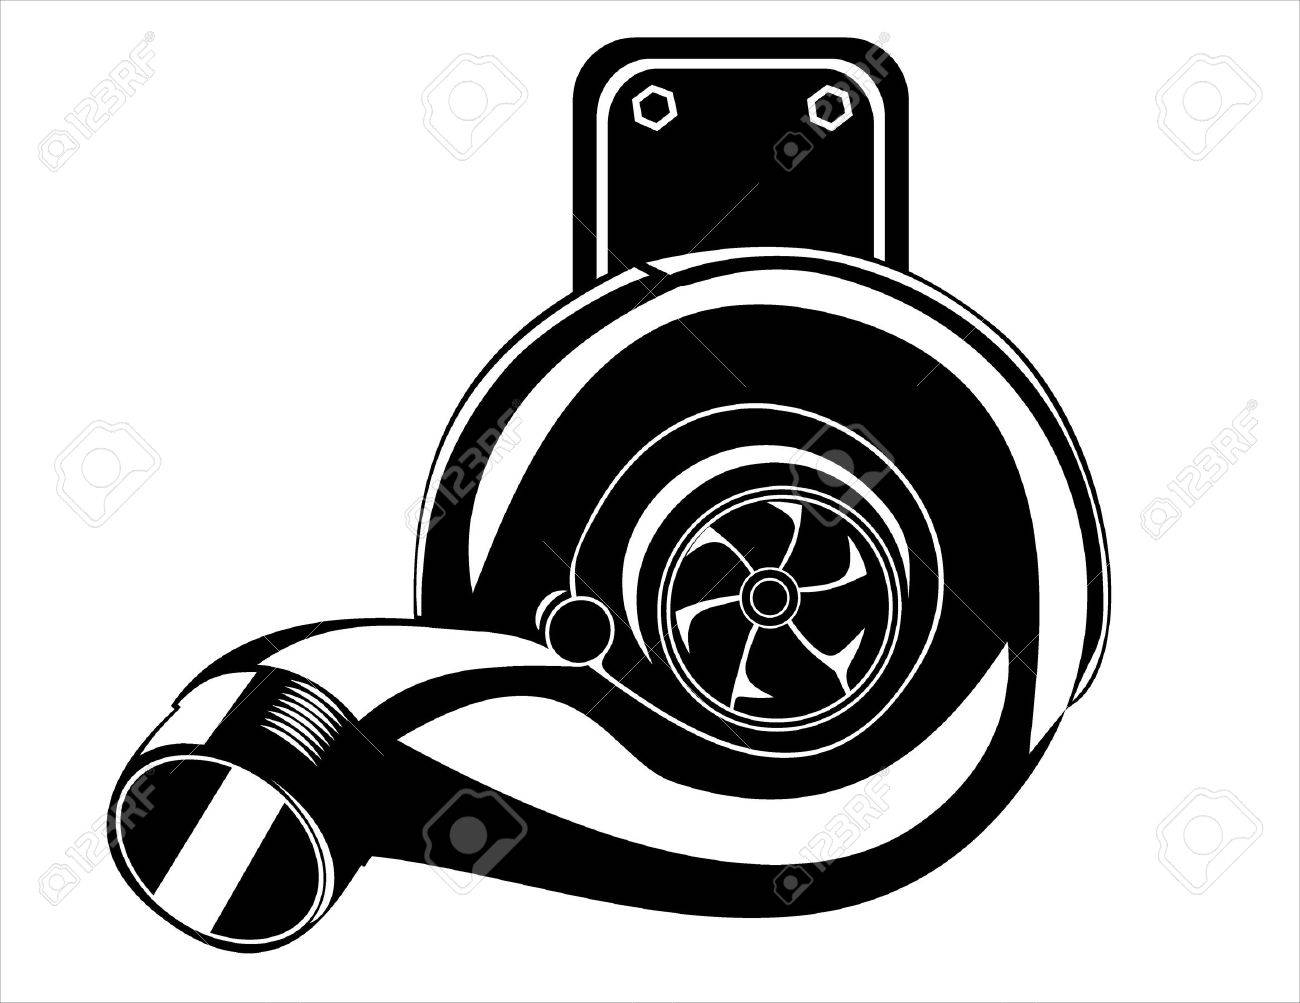 turbocharger isolated on a white background - 17751914